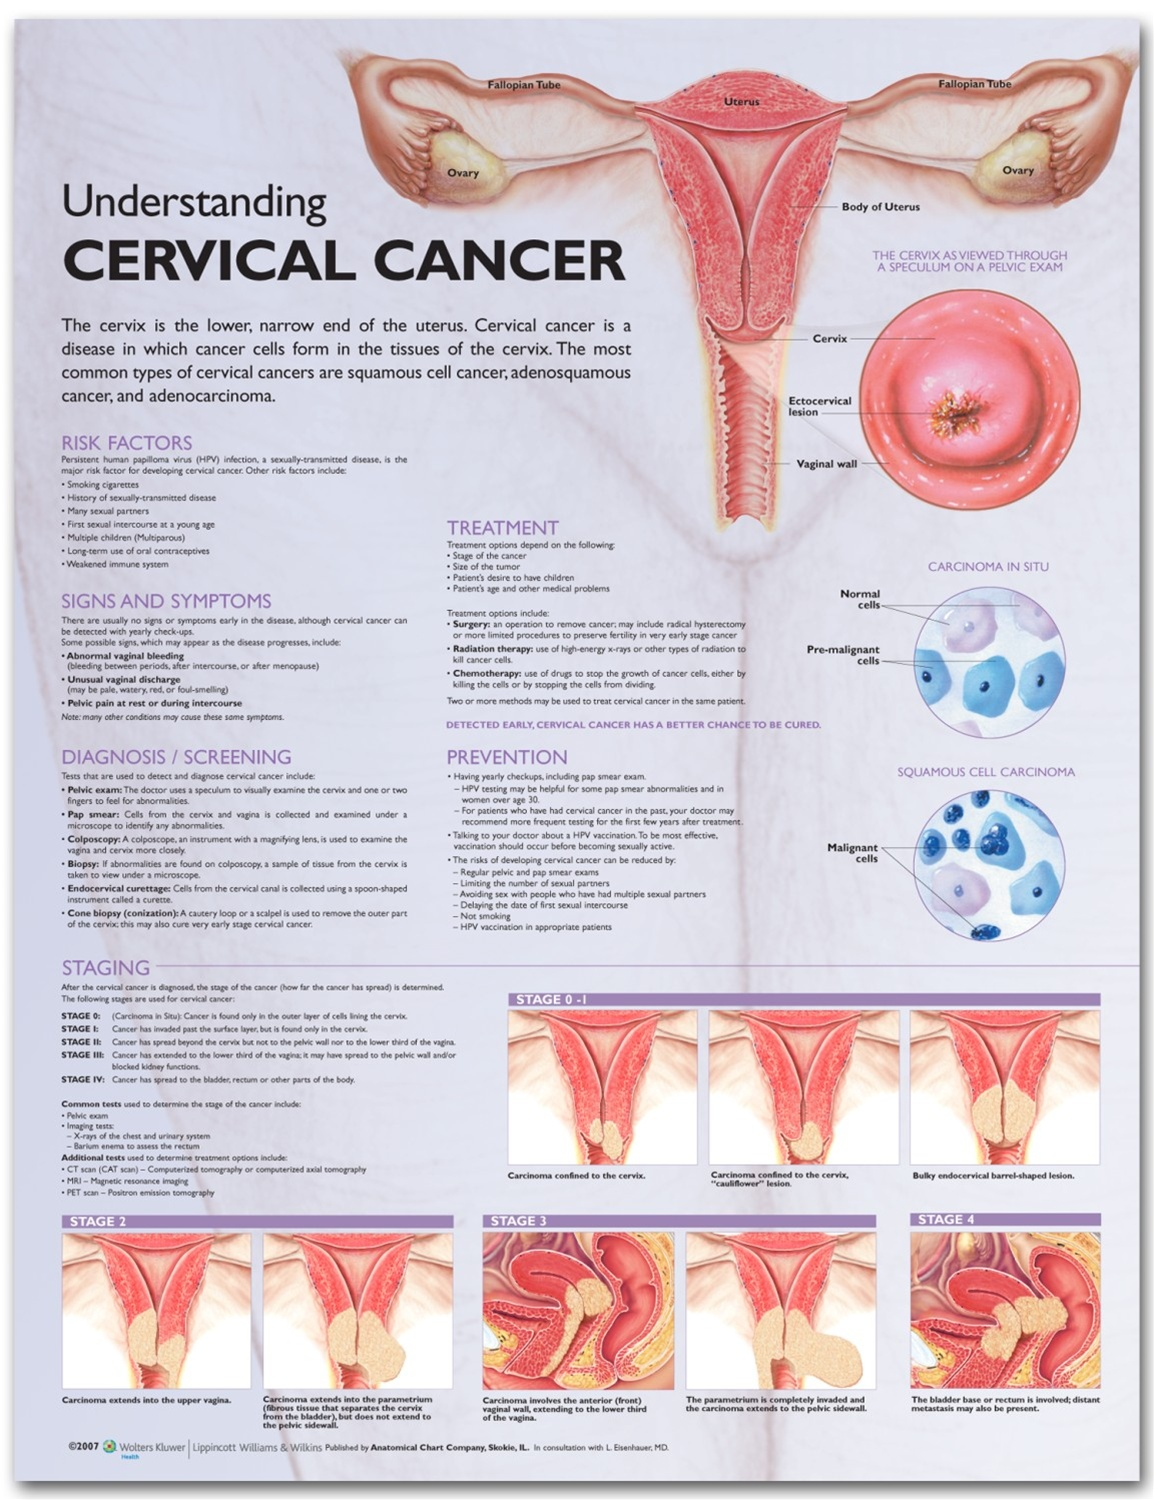 Understanding Cervical Cancer Anatomical Chart - Anatomy Models and Anatomical Charts